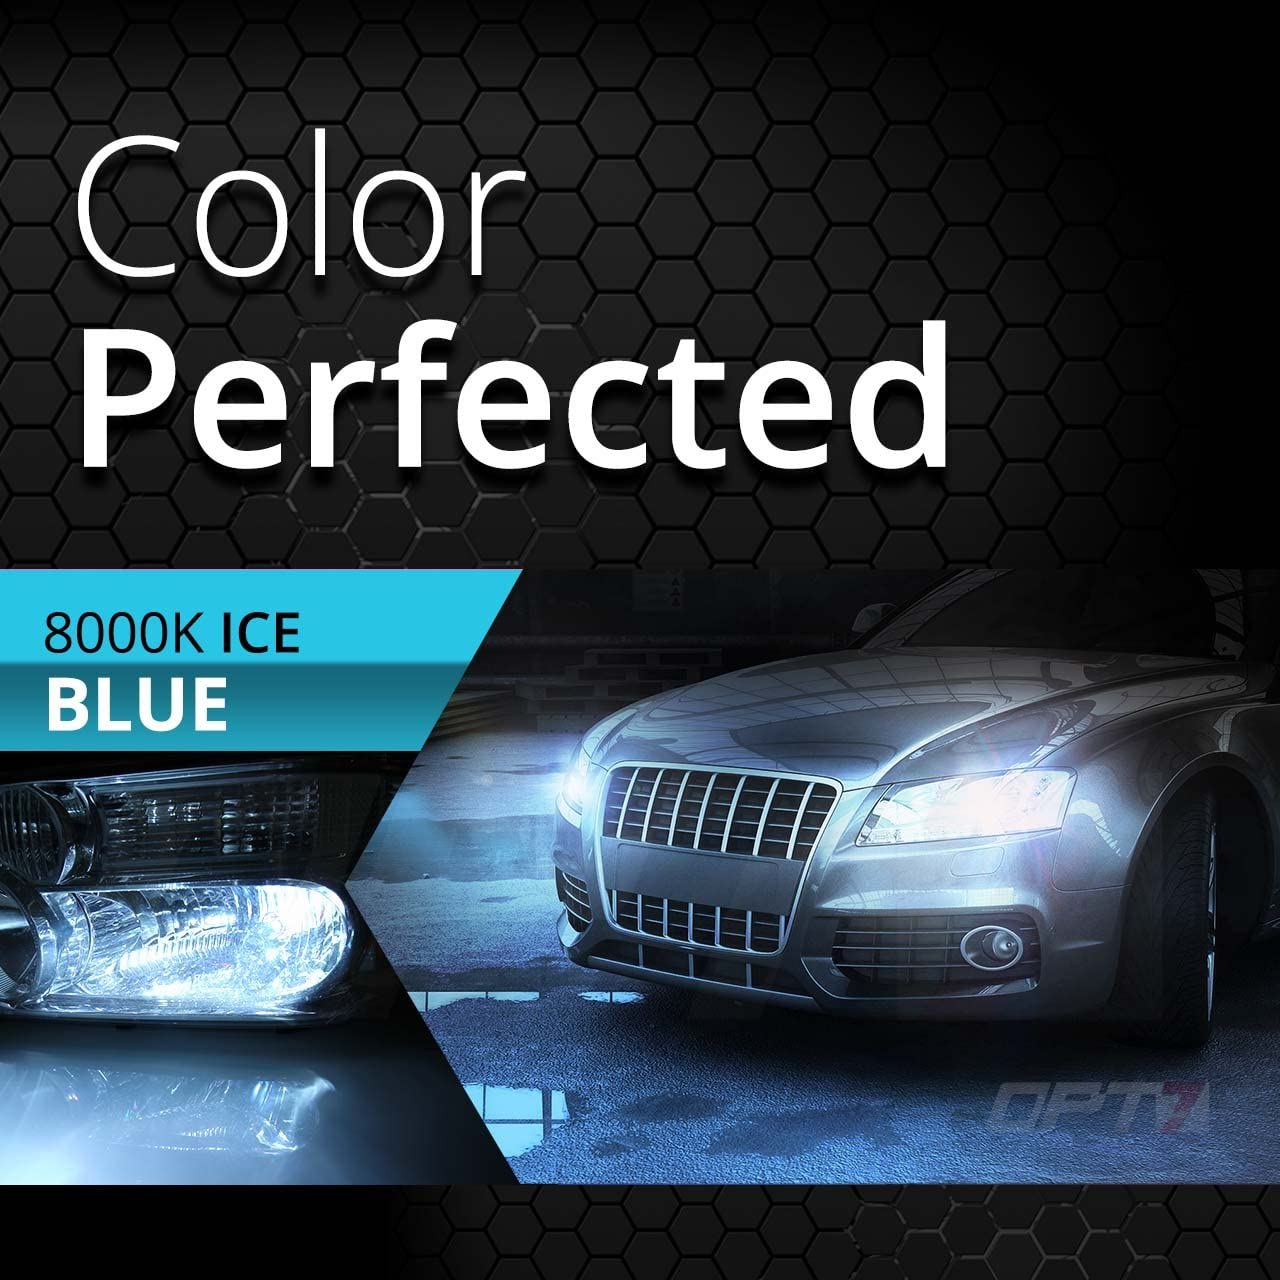 5000K Pure White 2 Yr Warranty 5x Brighter 6x Longer Life OPT7 Bolt AC 55w H1 High Beam HID Kit All Bulb Colors and Sizes Xenon Light